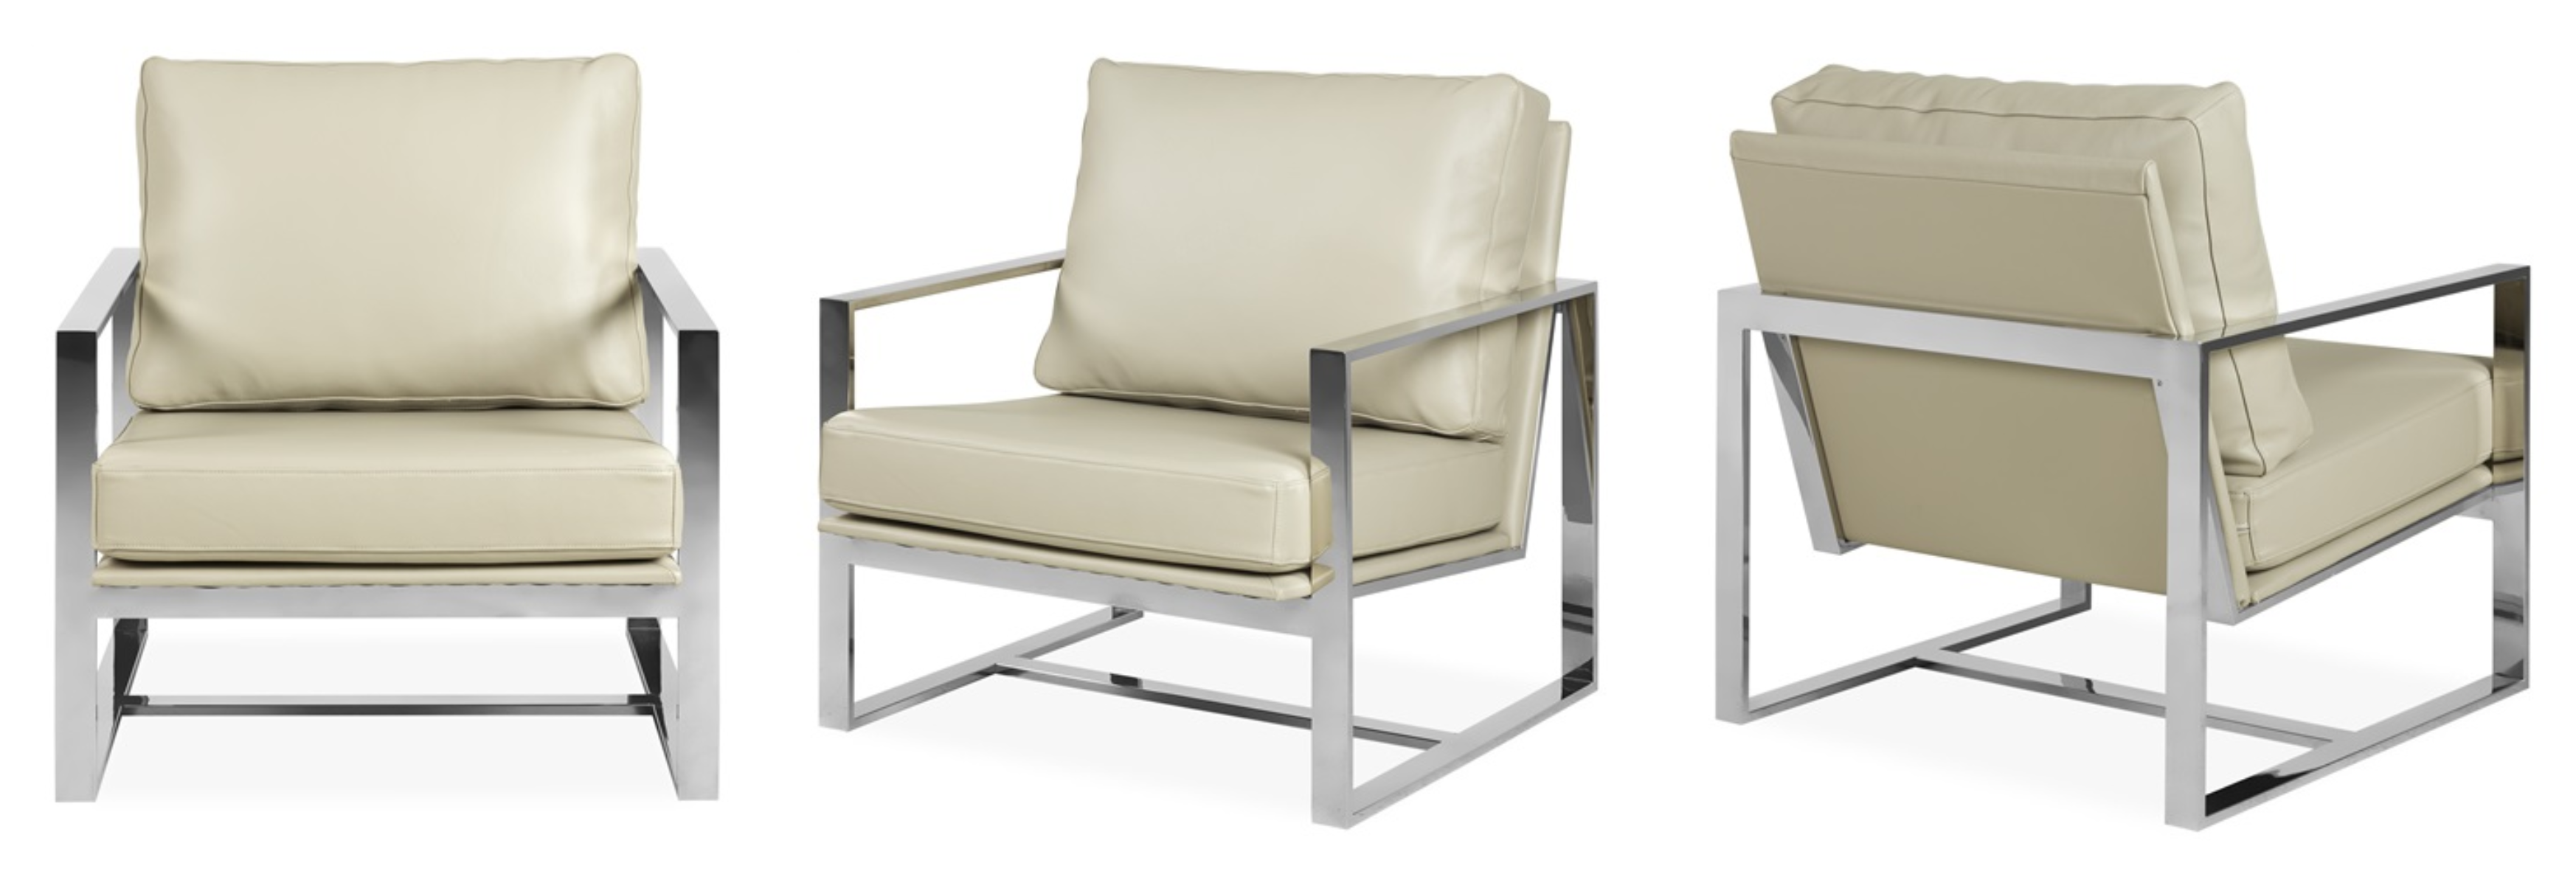 Febo | Occasional Chairs | Interior Design Service | The Sofa U0026 Chair  Company